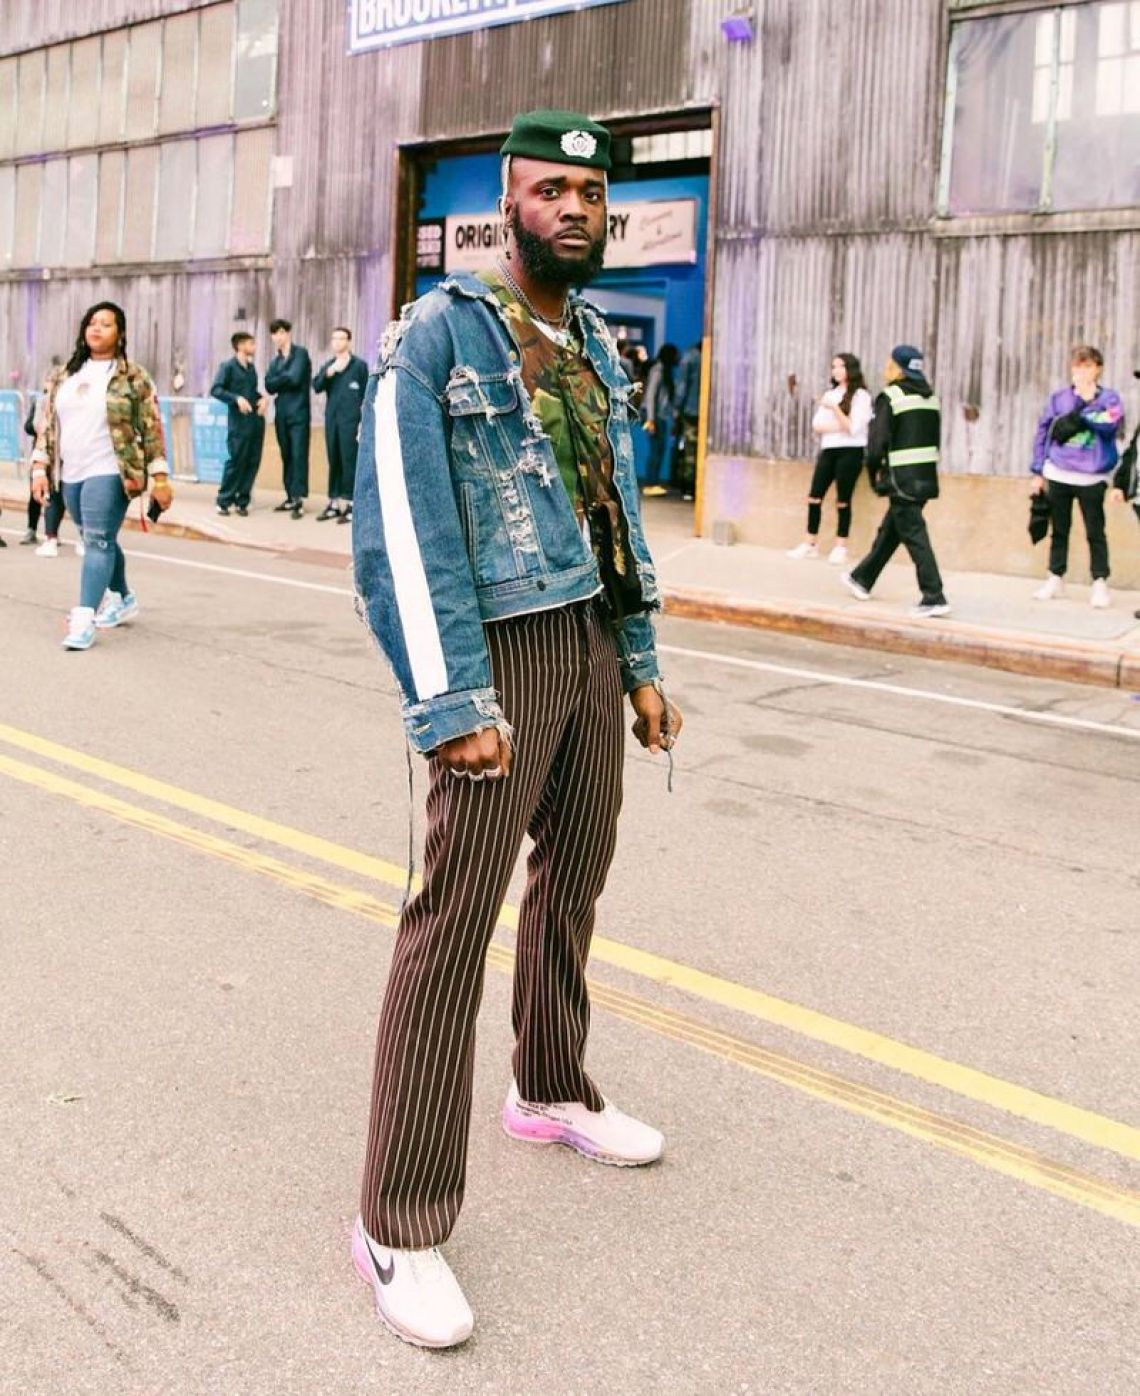 Gianni Lee in the Serena Williams x Off White x Nike Air Max 97